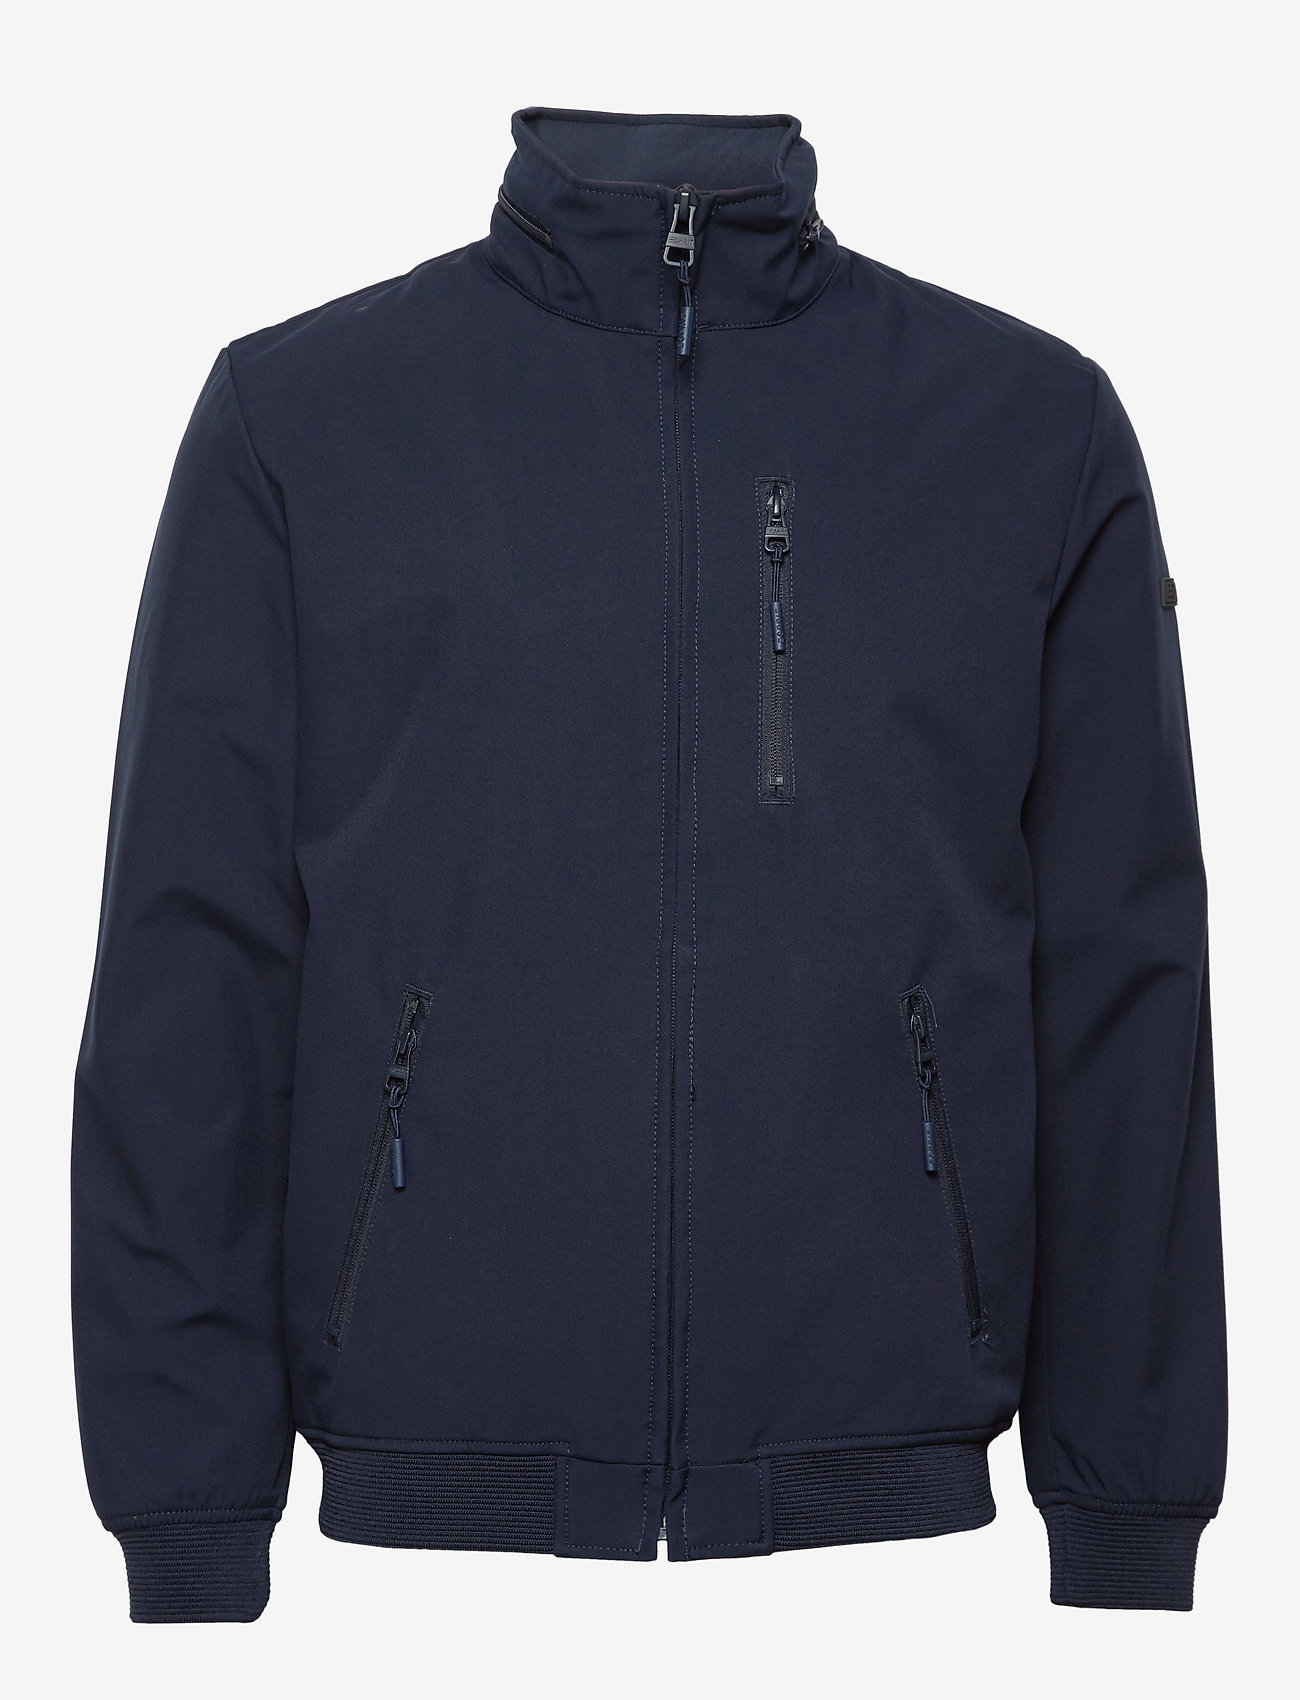 Esprit Casual - Jackets outdoor woven - windjassen - dark blue - 1